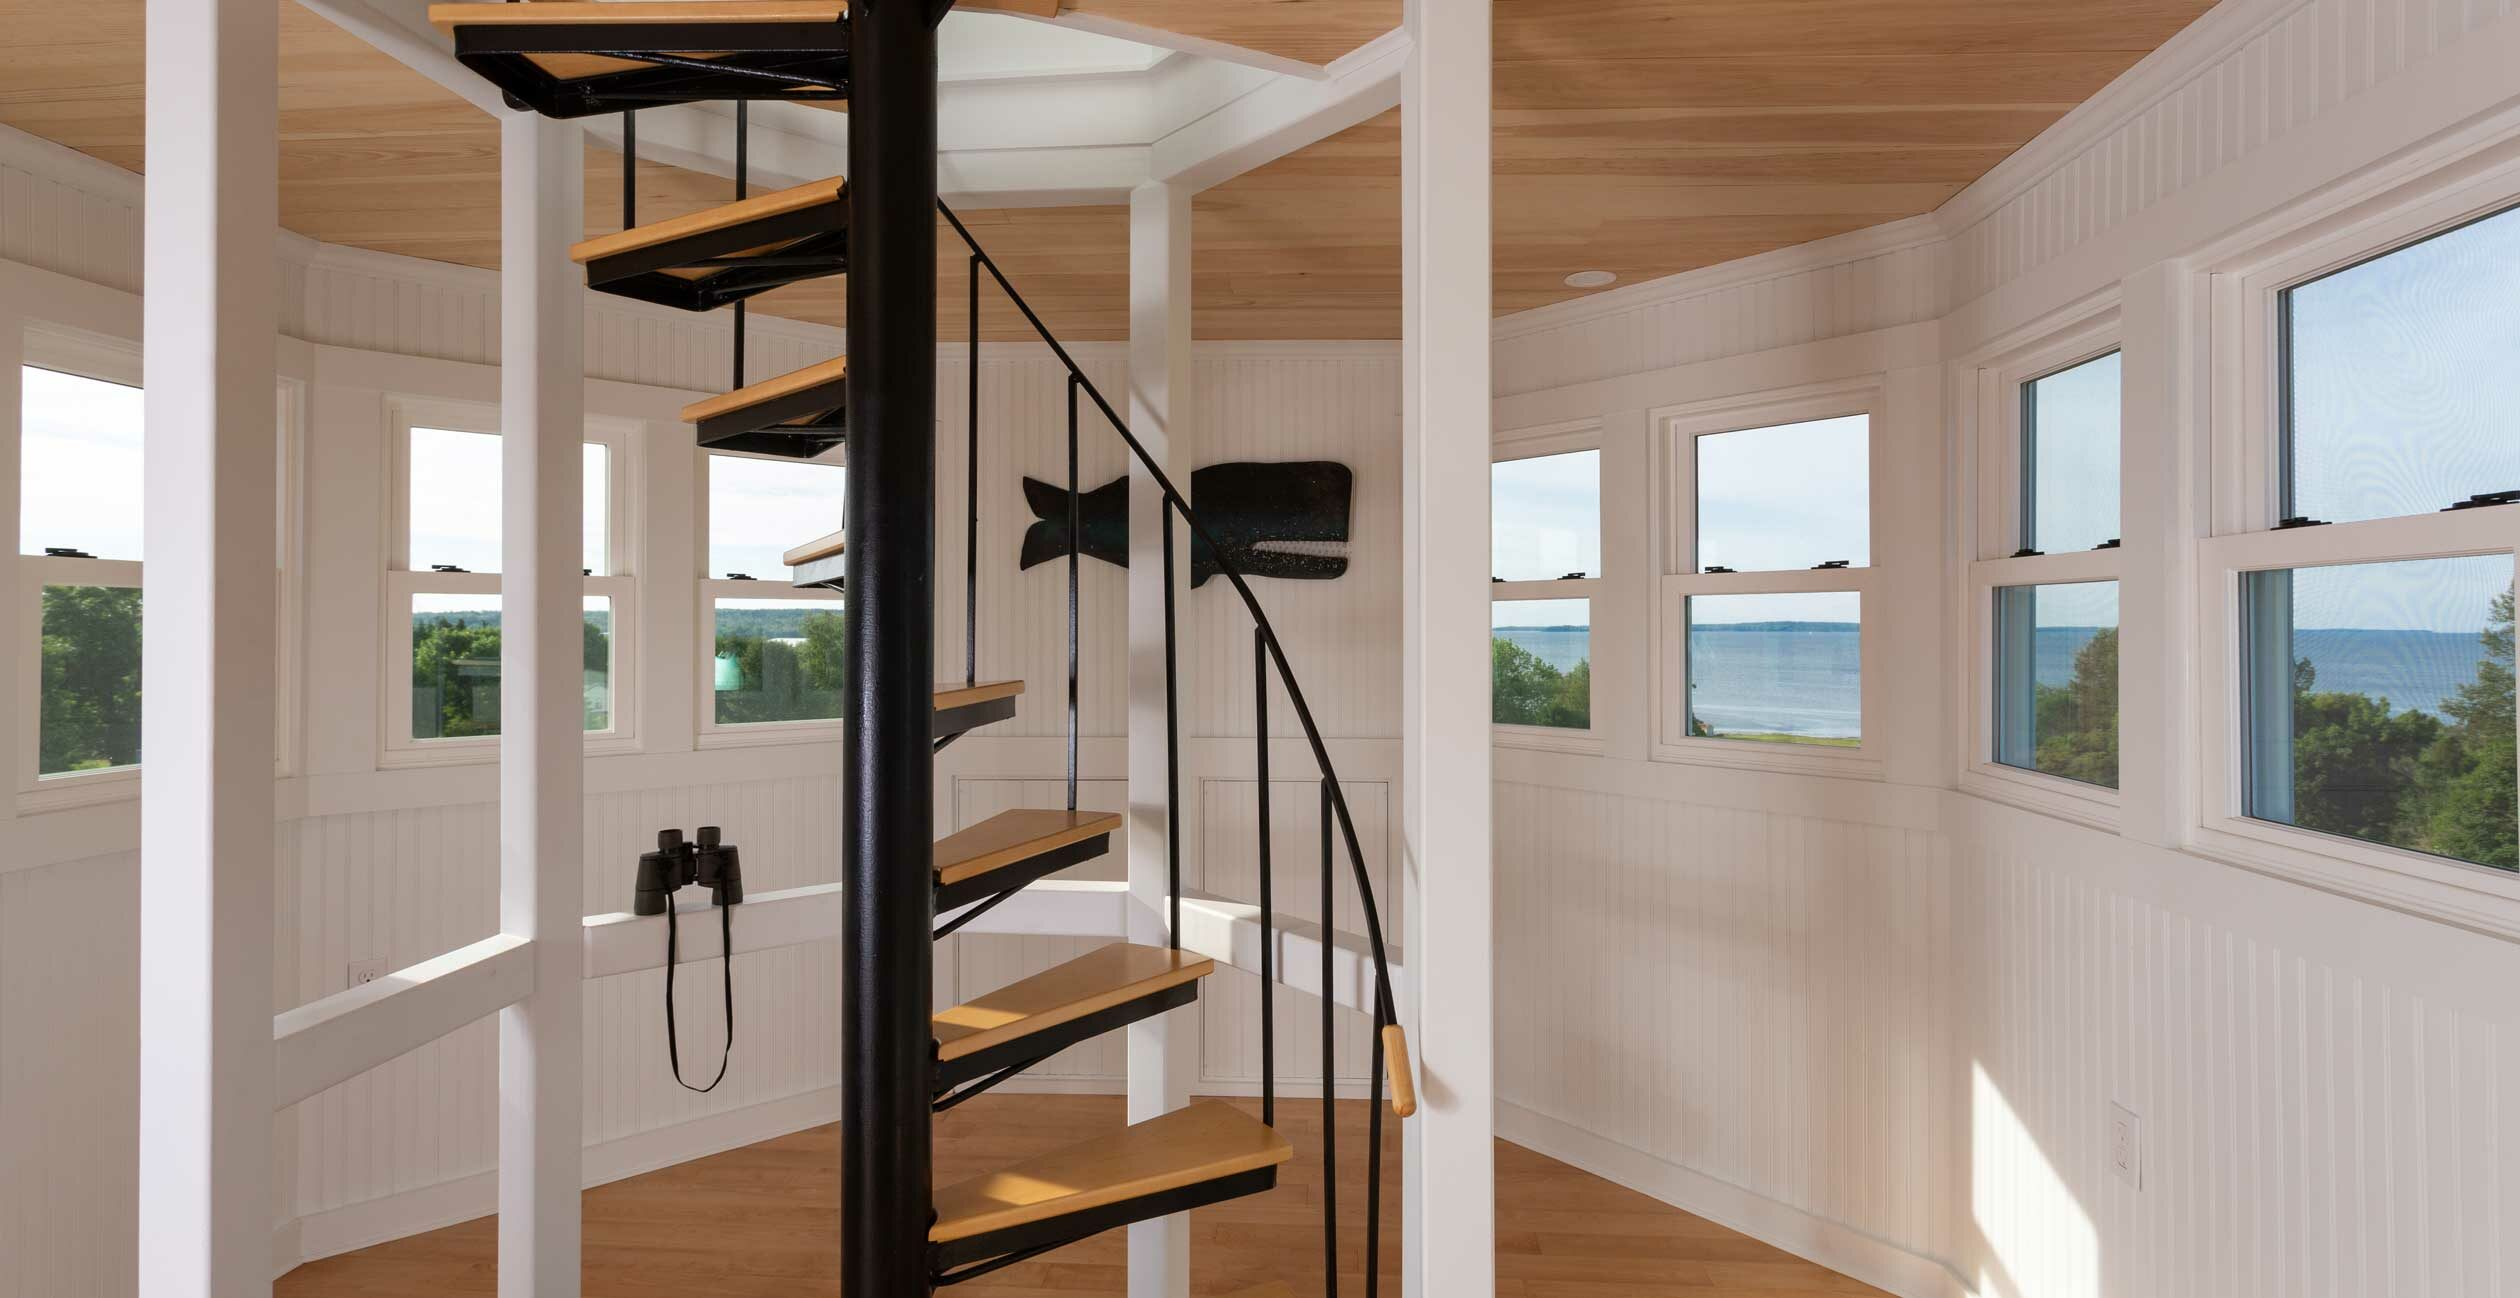 Cupola Spiral Staircase with panaromic windowed view of the ocean